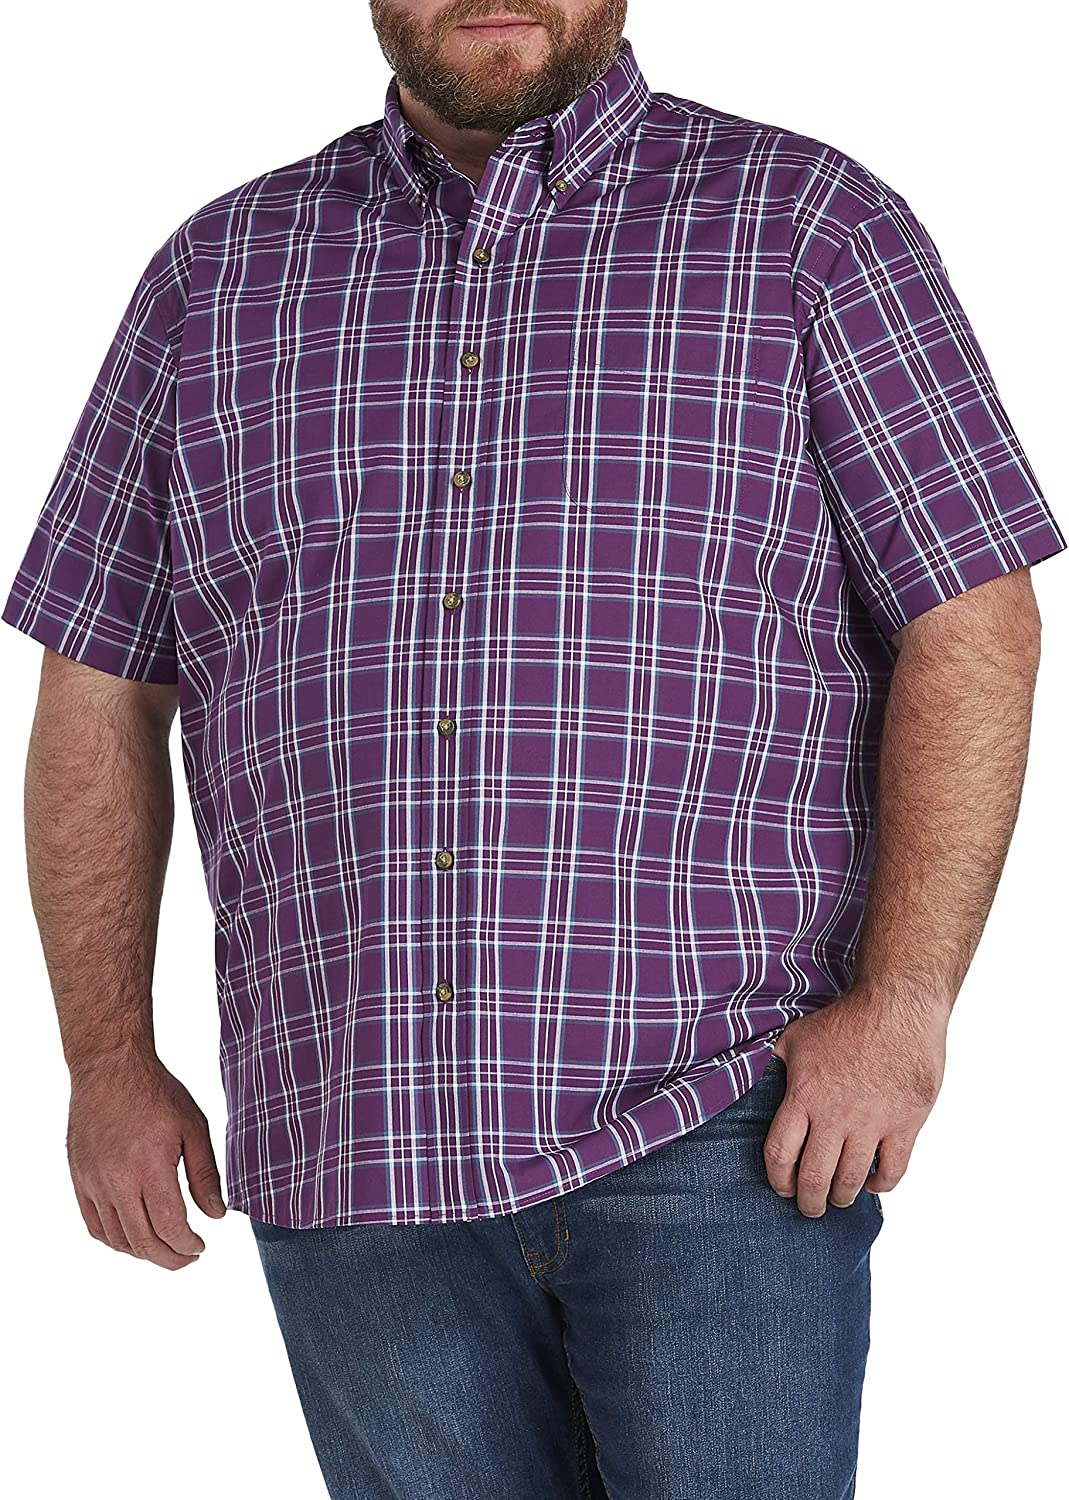 Harbor Bay by DXL Big and Tall Easy-Care Large Plaid Sport Shirt, Wineberry